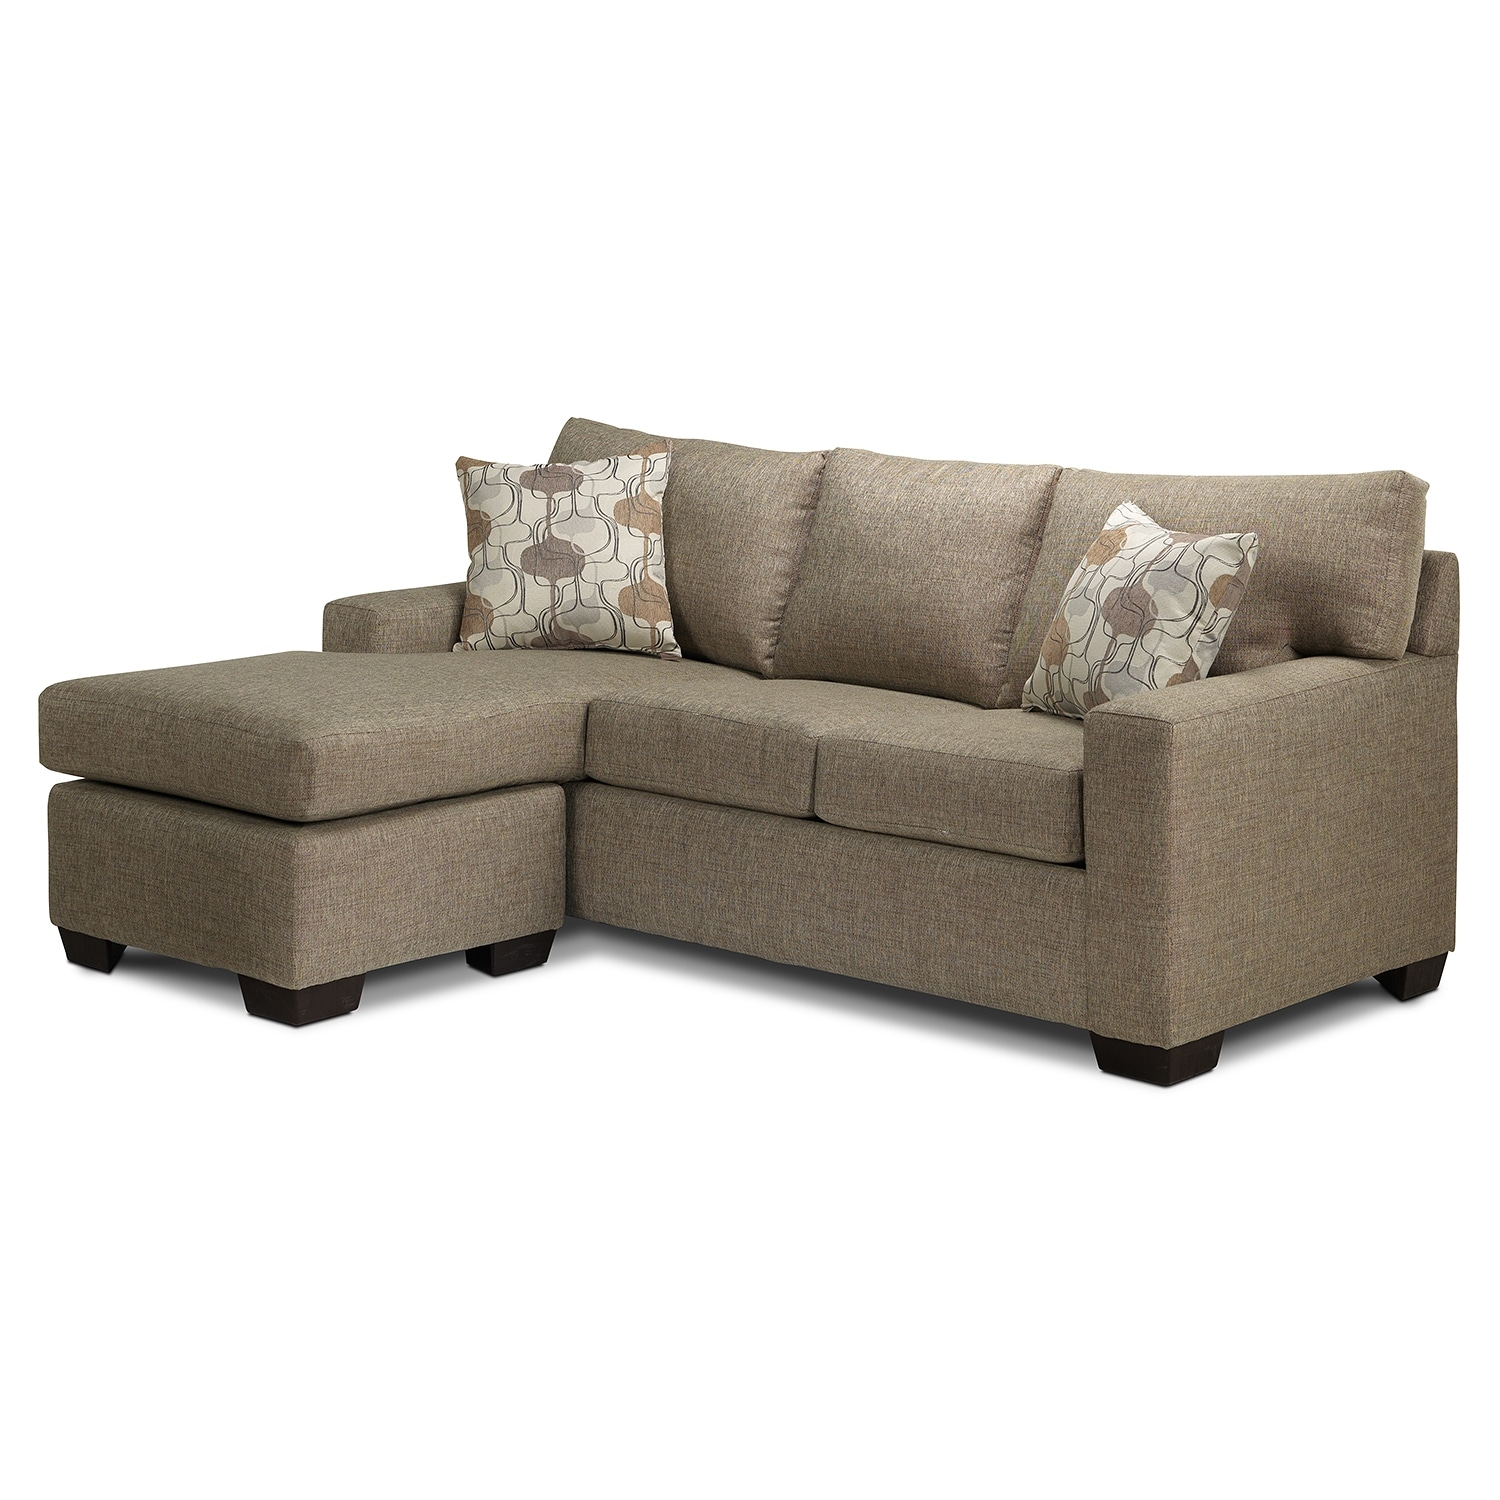 Living Room Furniture - Kendall Sofabed w/ Chaise - Granite Sand